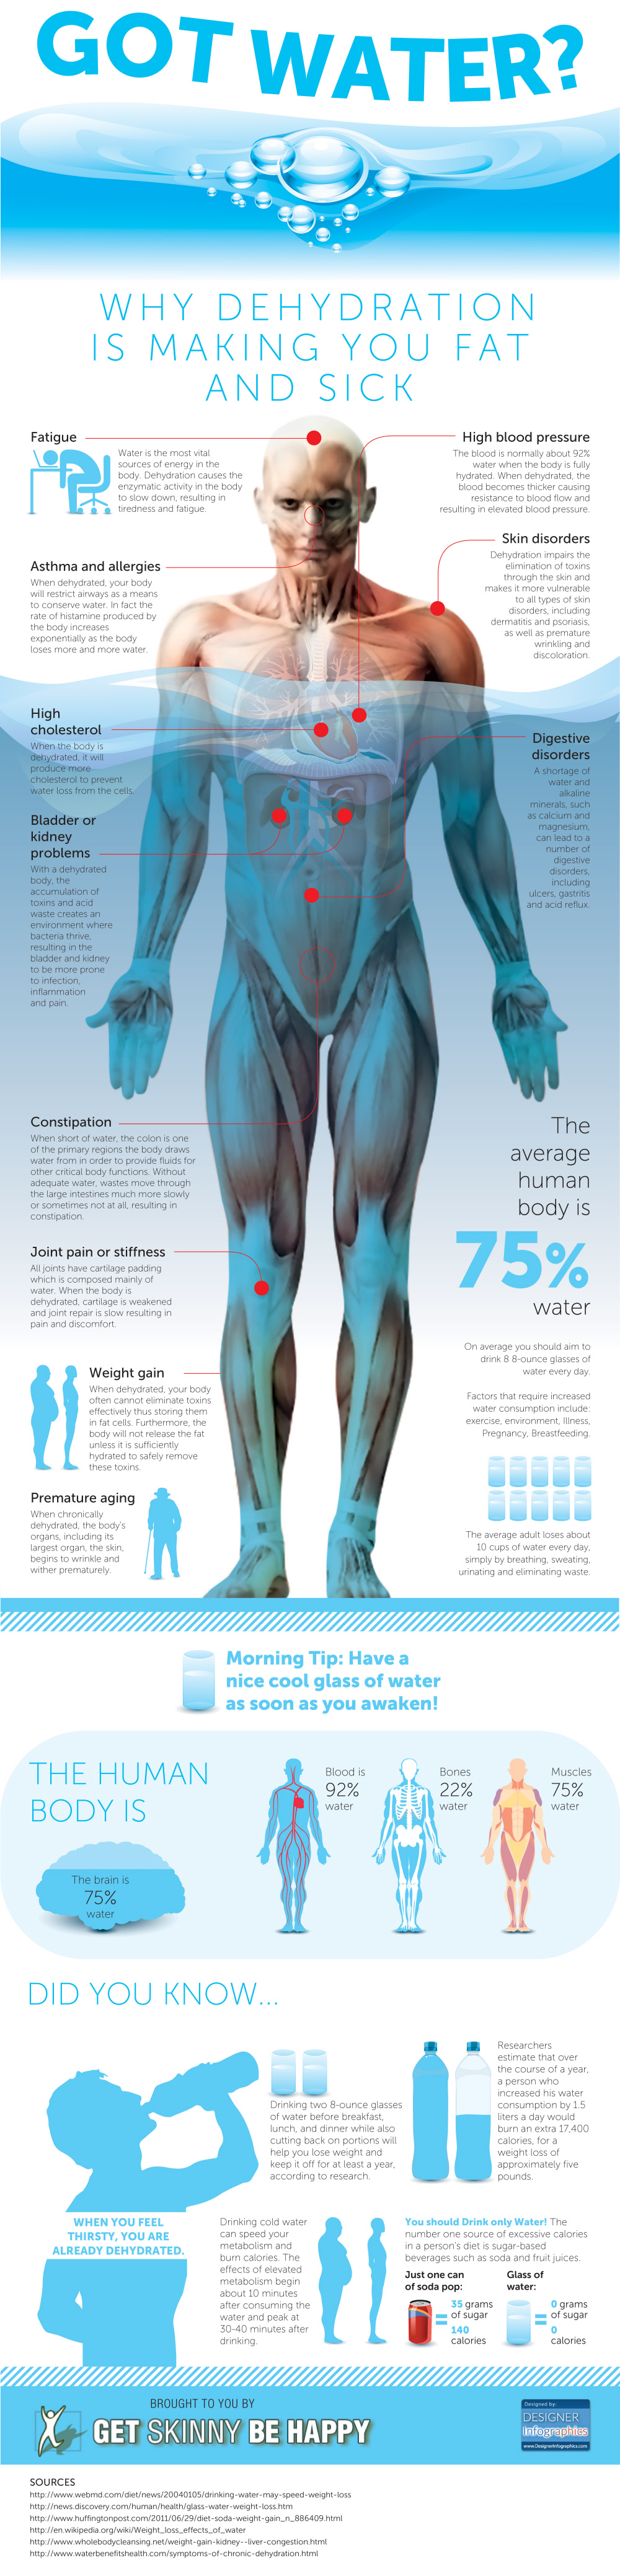 06 water-health-weight-loss-infographic